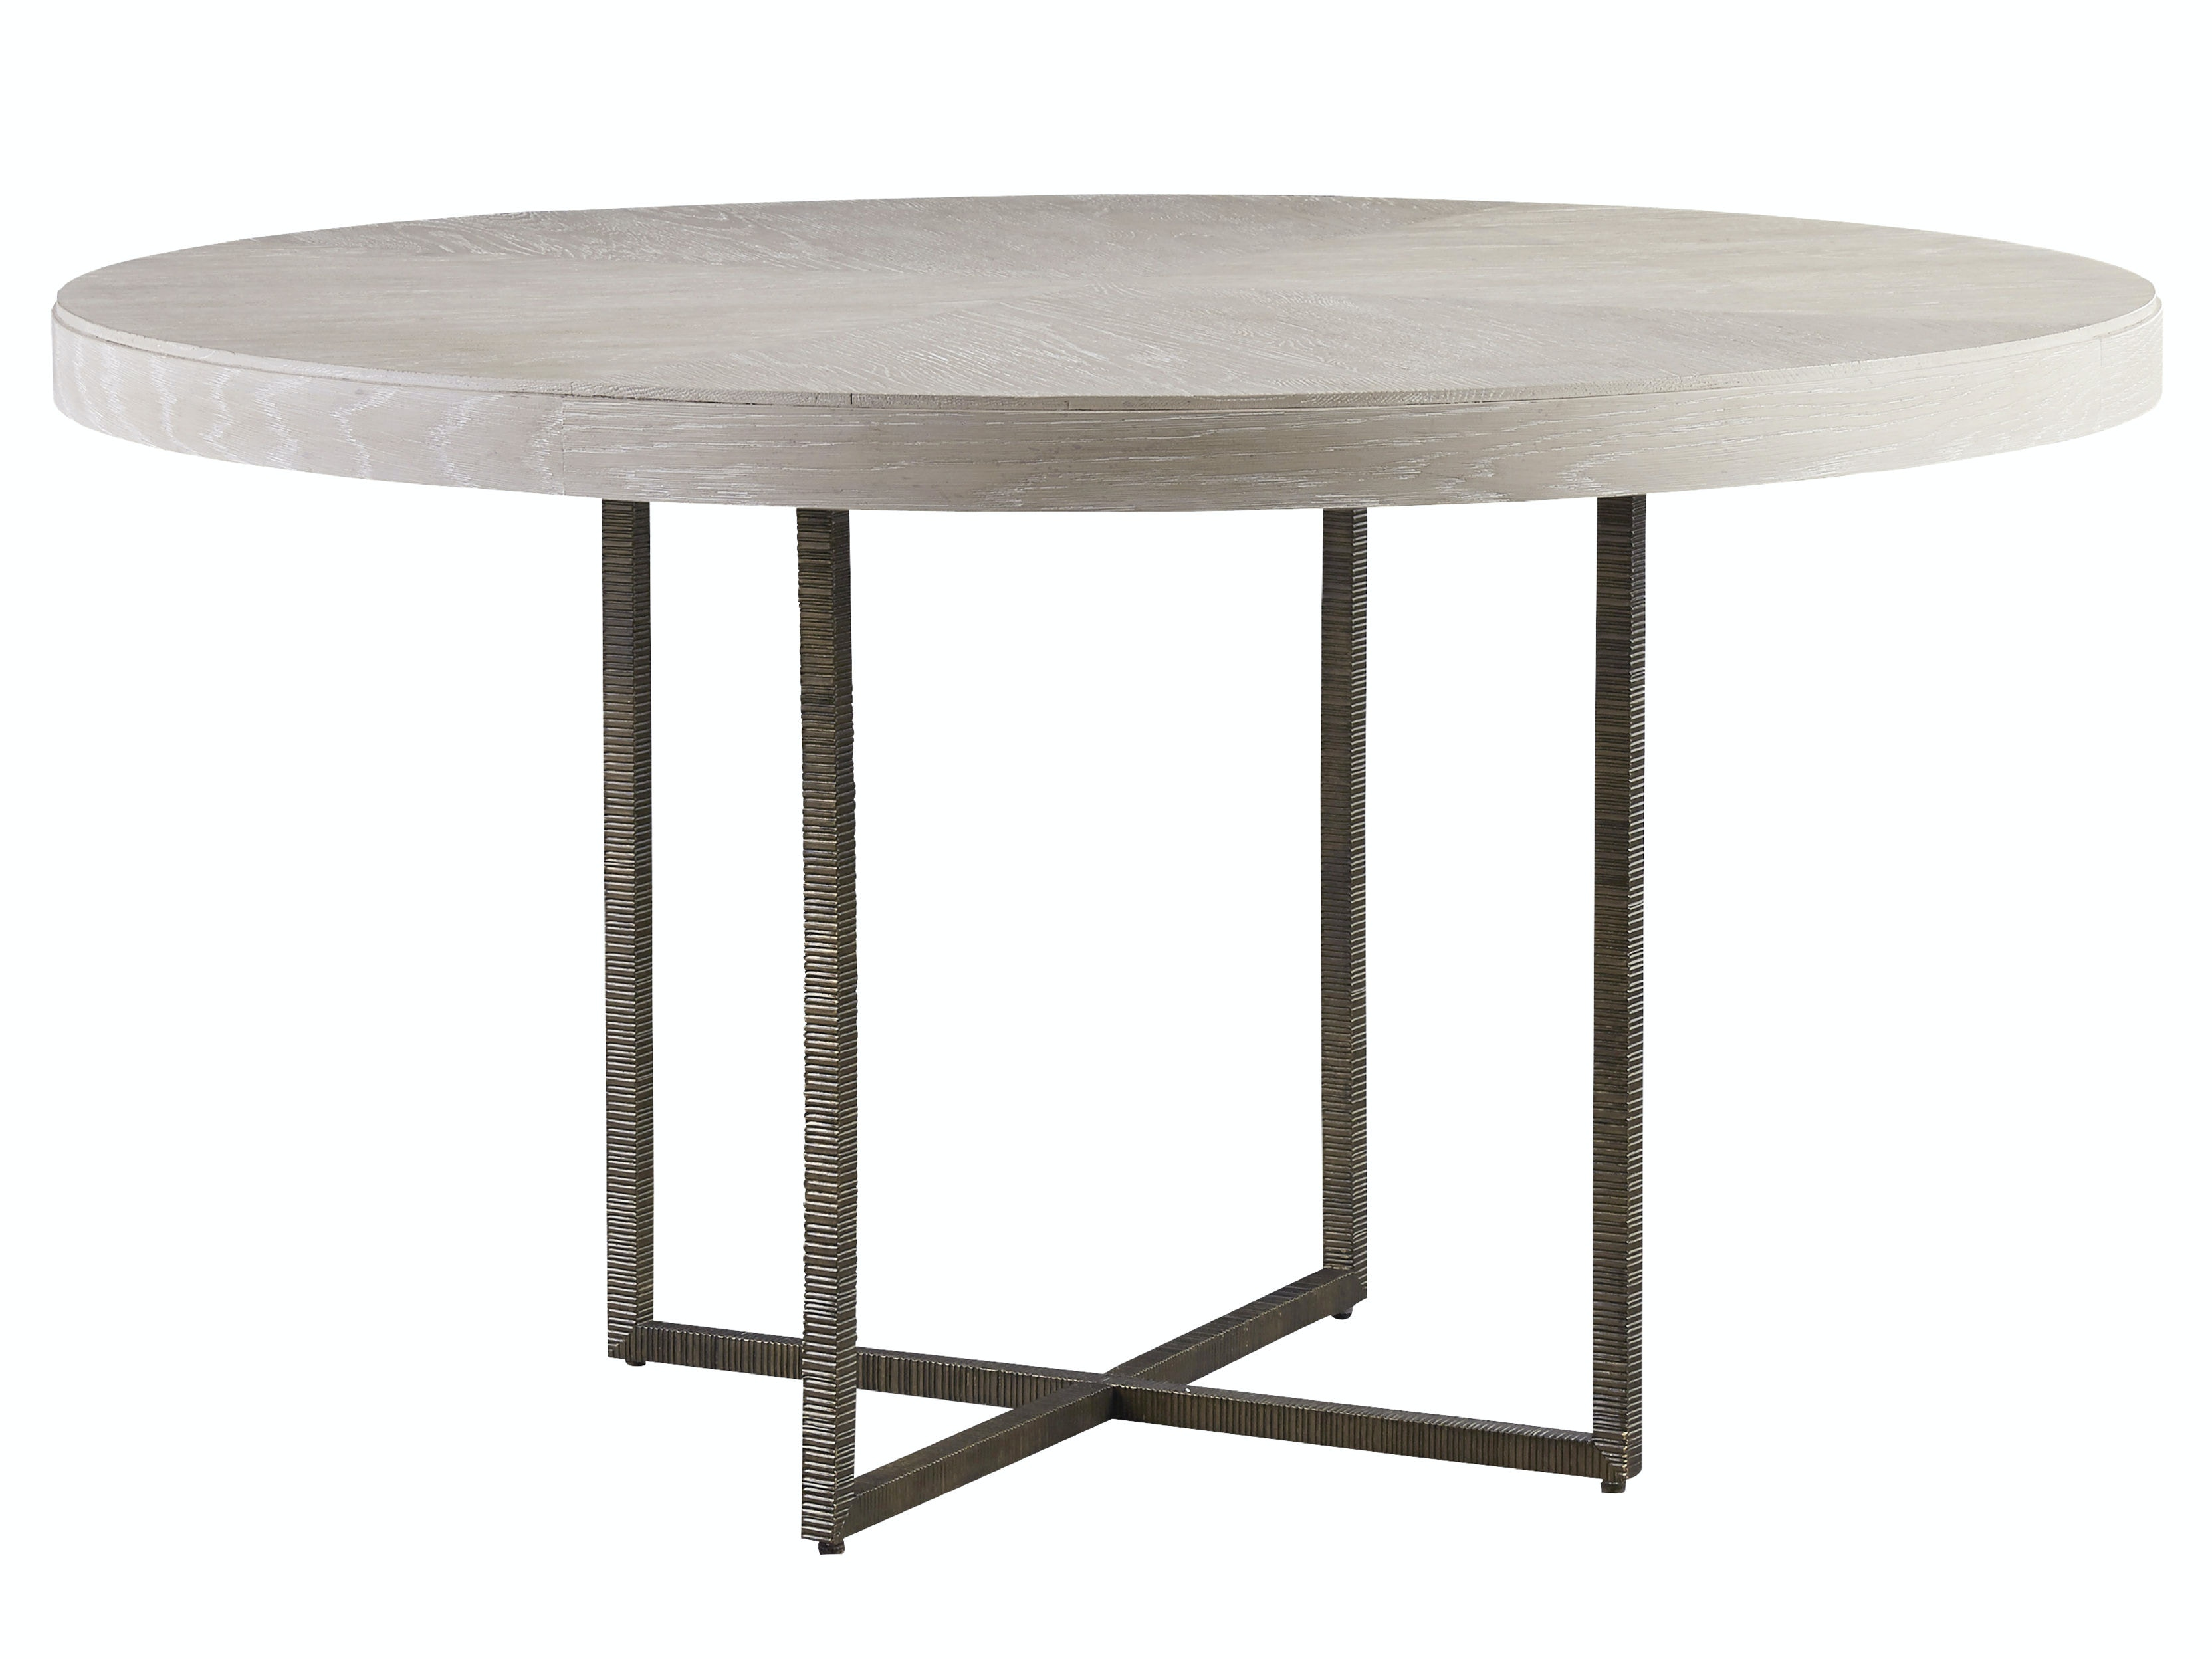 Dining Room Modern Quartz Robards Round Dining Table : 480352a from www.starfurniture.com size 1024 x 768 jpeg 33kB